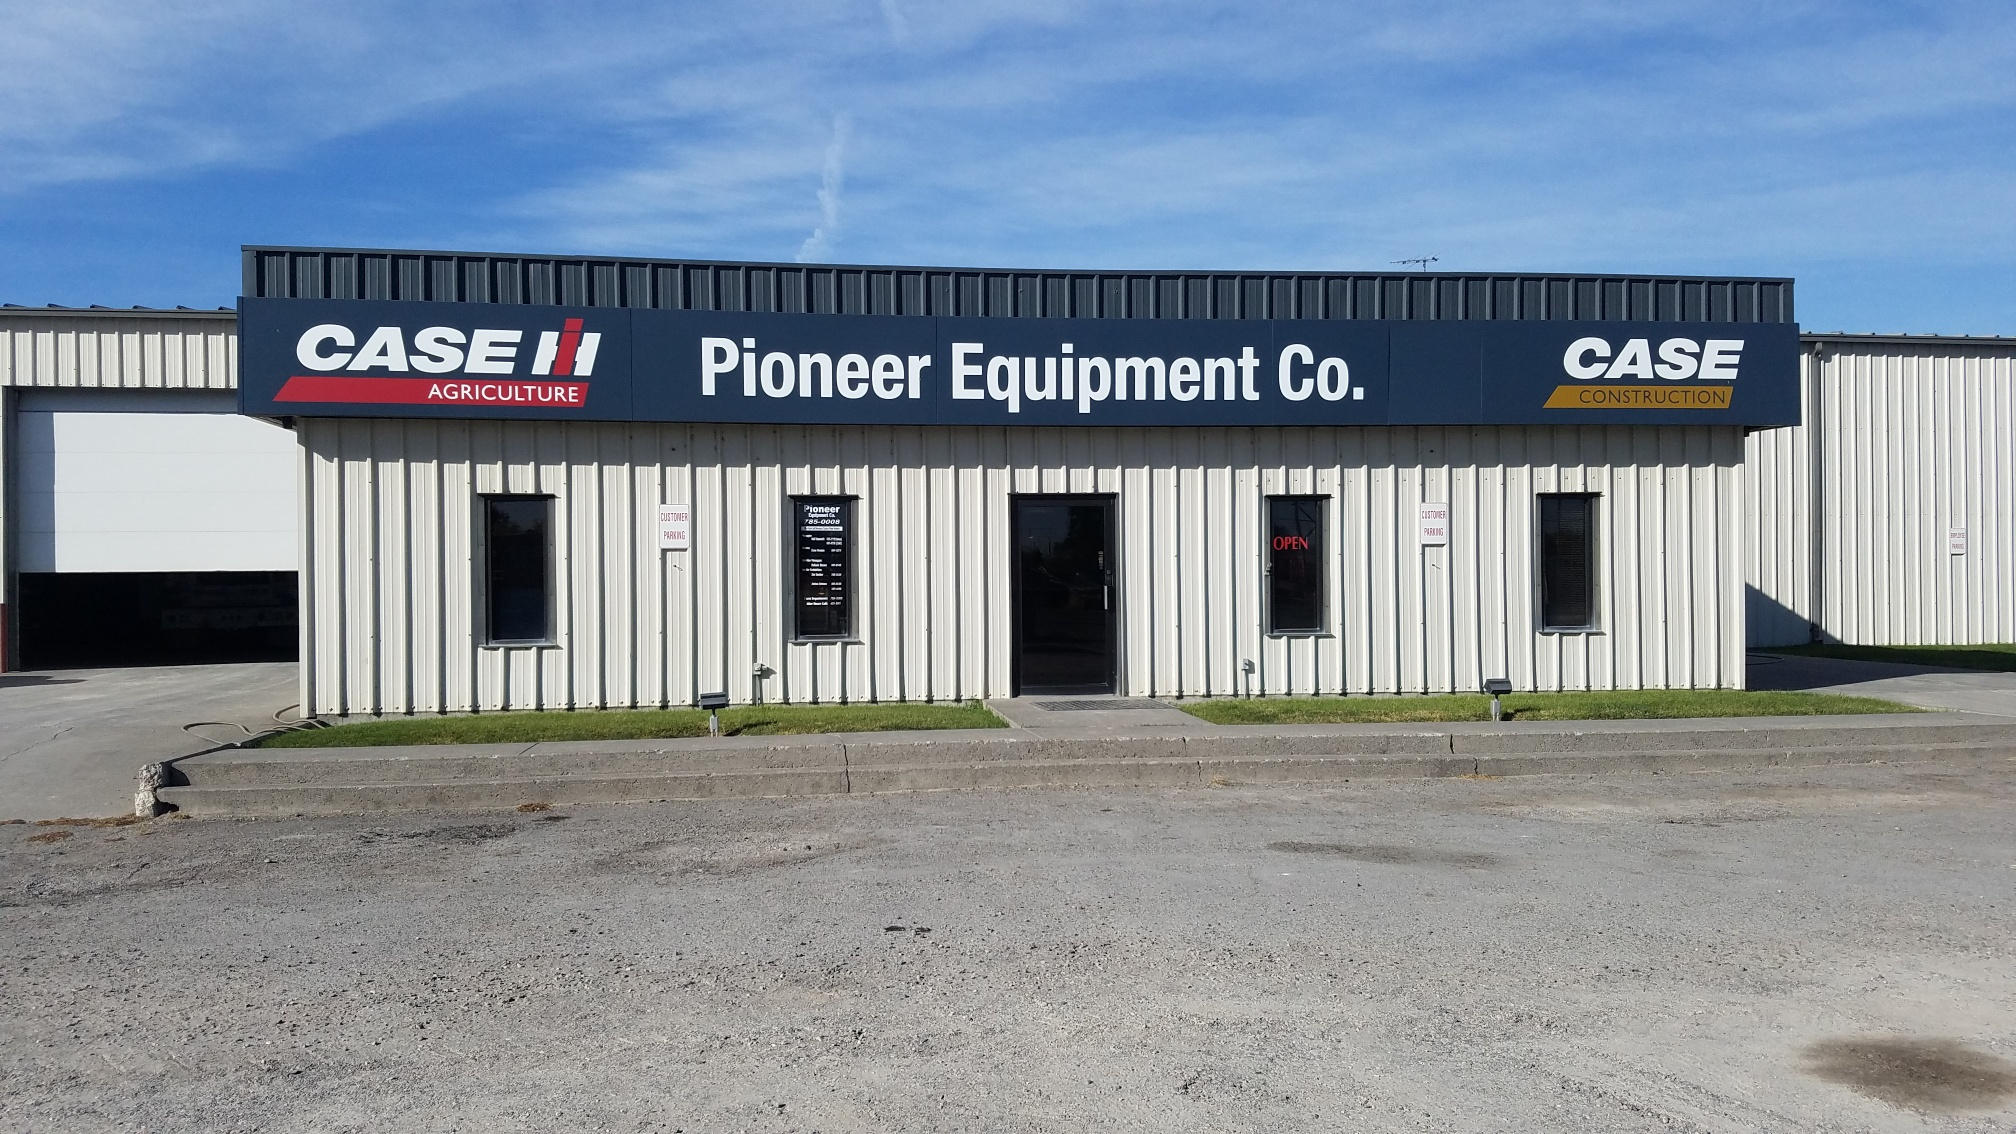 Pioneer Equipment Co